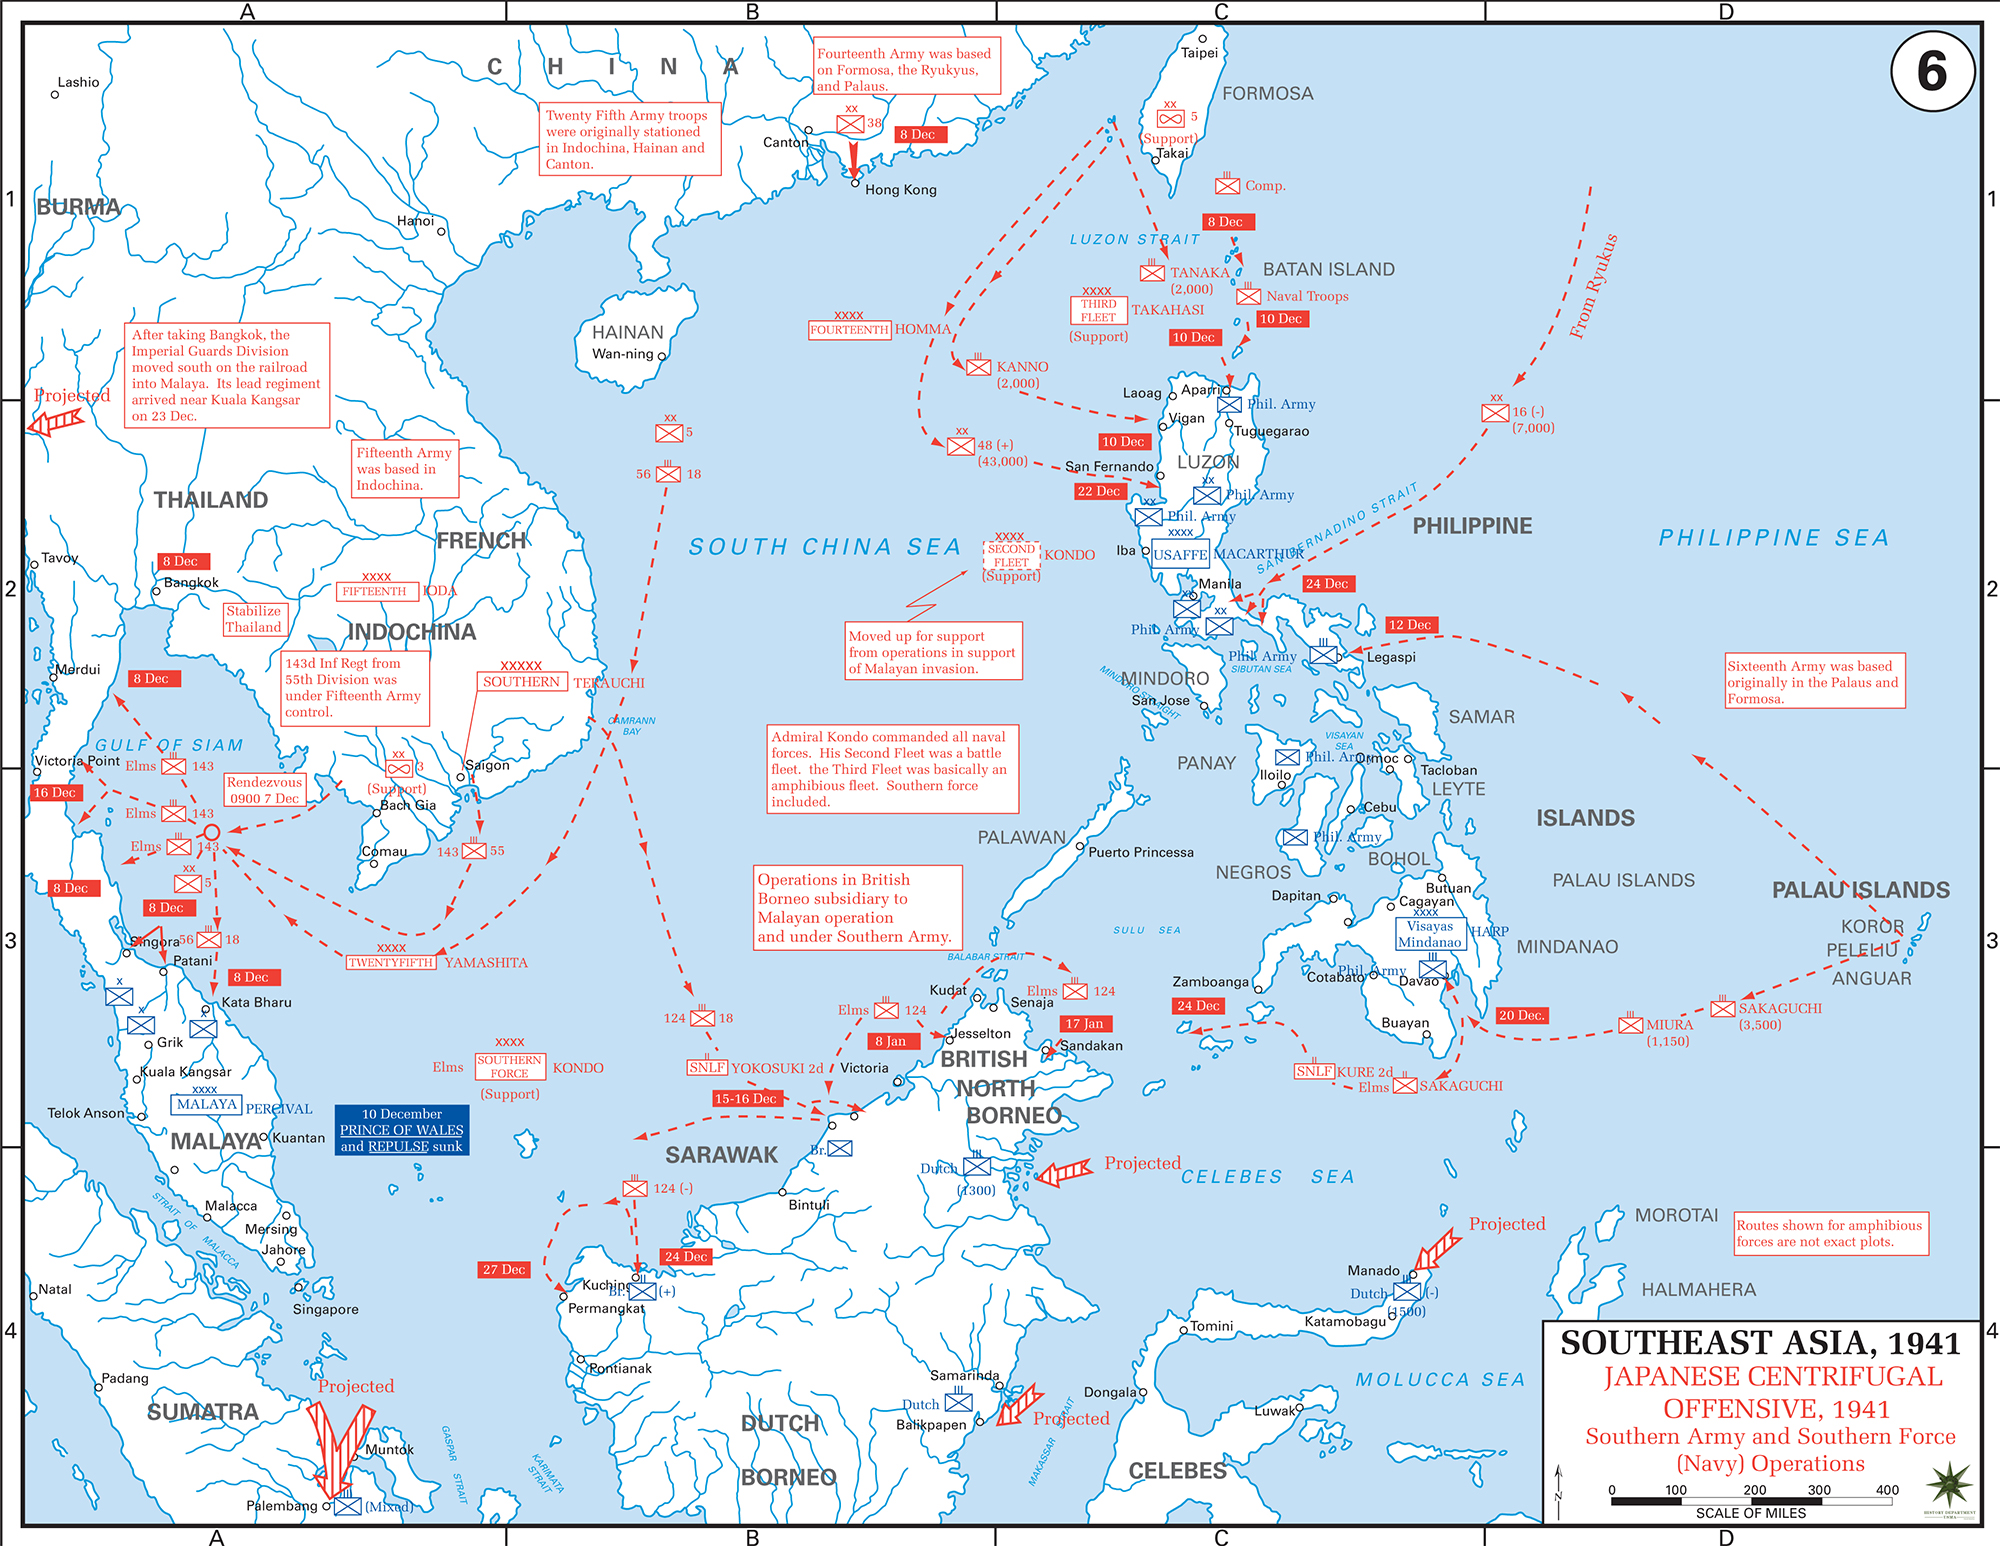 Map Of WWII Japanese Offensive Southeast Asia - Japan map 1500